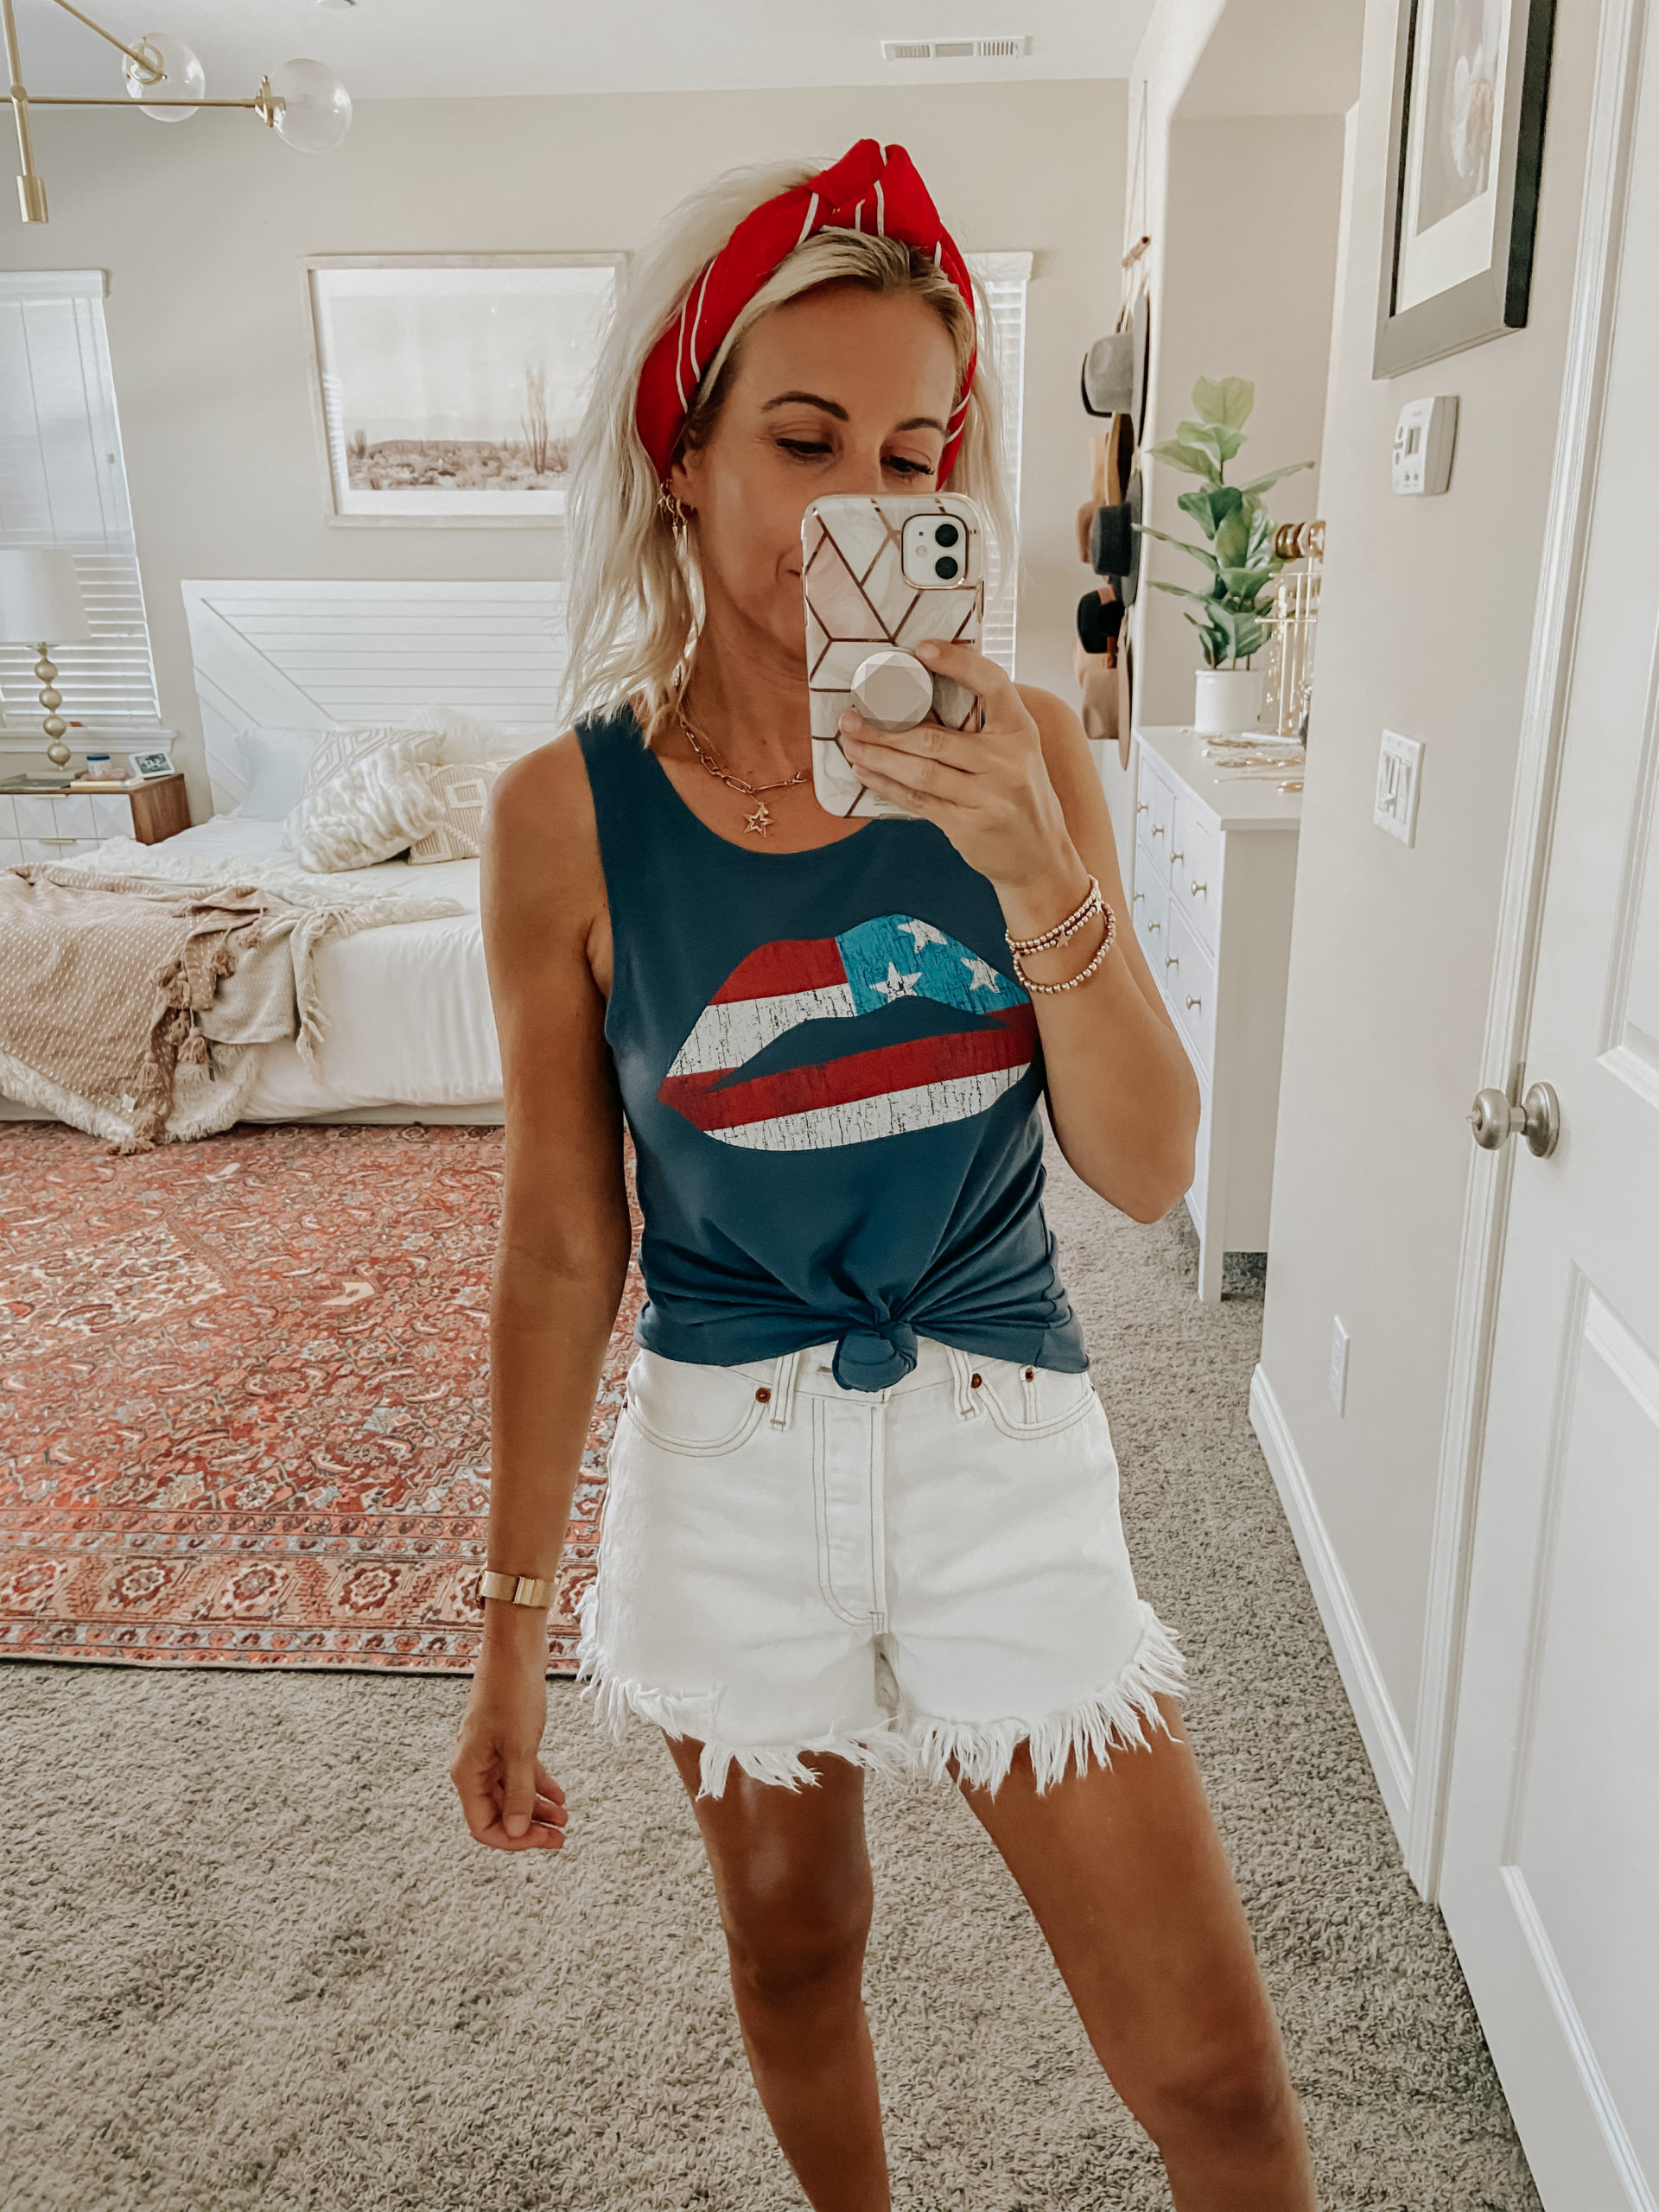 LAST MINUTE 4TH OF JULY OUTFIT IDEAS- Jaclyn De Leon Style+ sharing a few different outfit ideas for the 4th of July and Americana style holidays